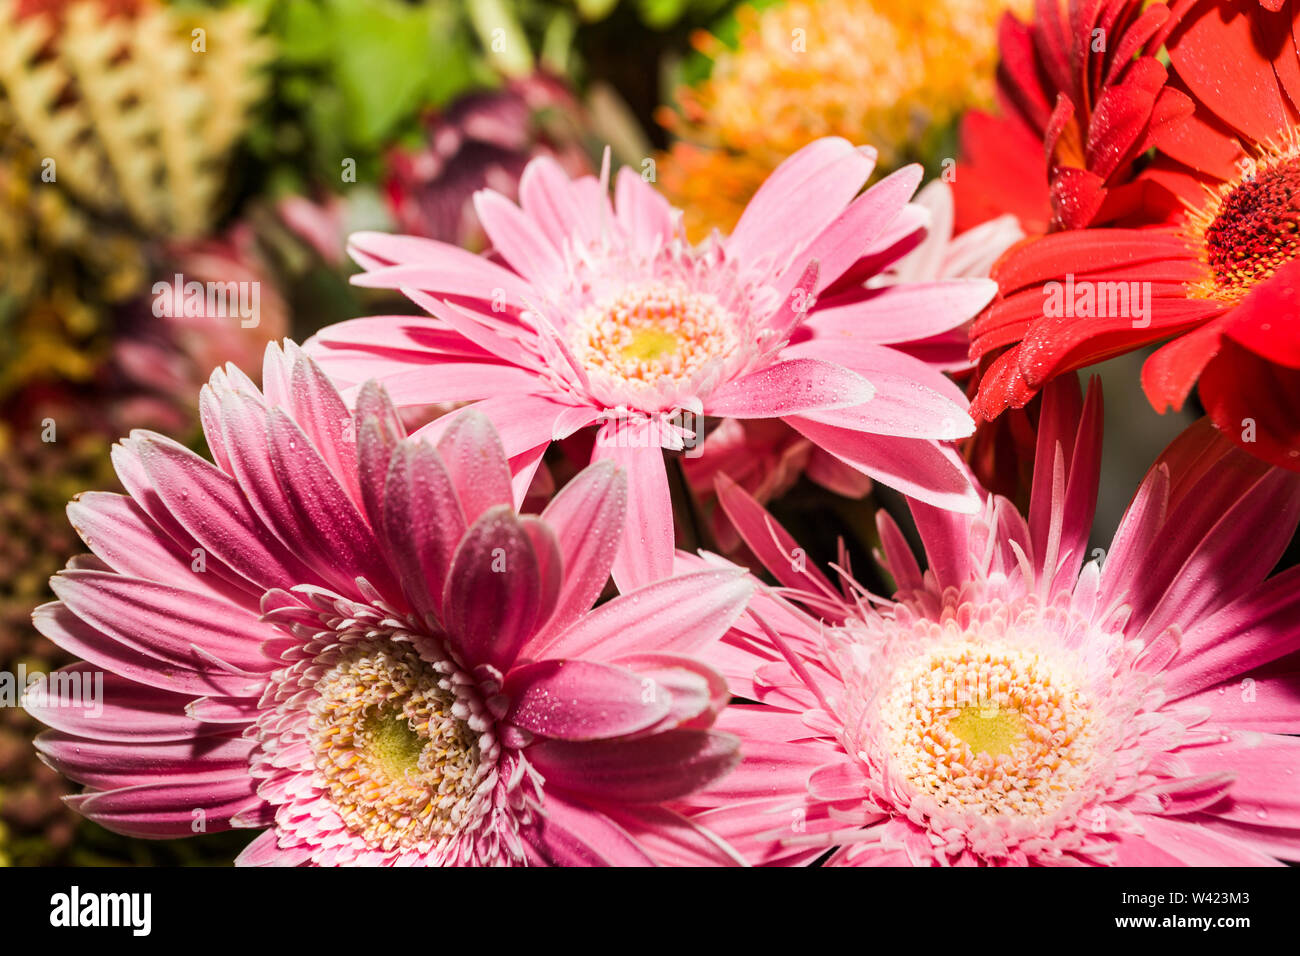 Pink gerbera flower close up with water drops and blurred background with the details around the long petals - Stock Image